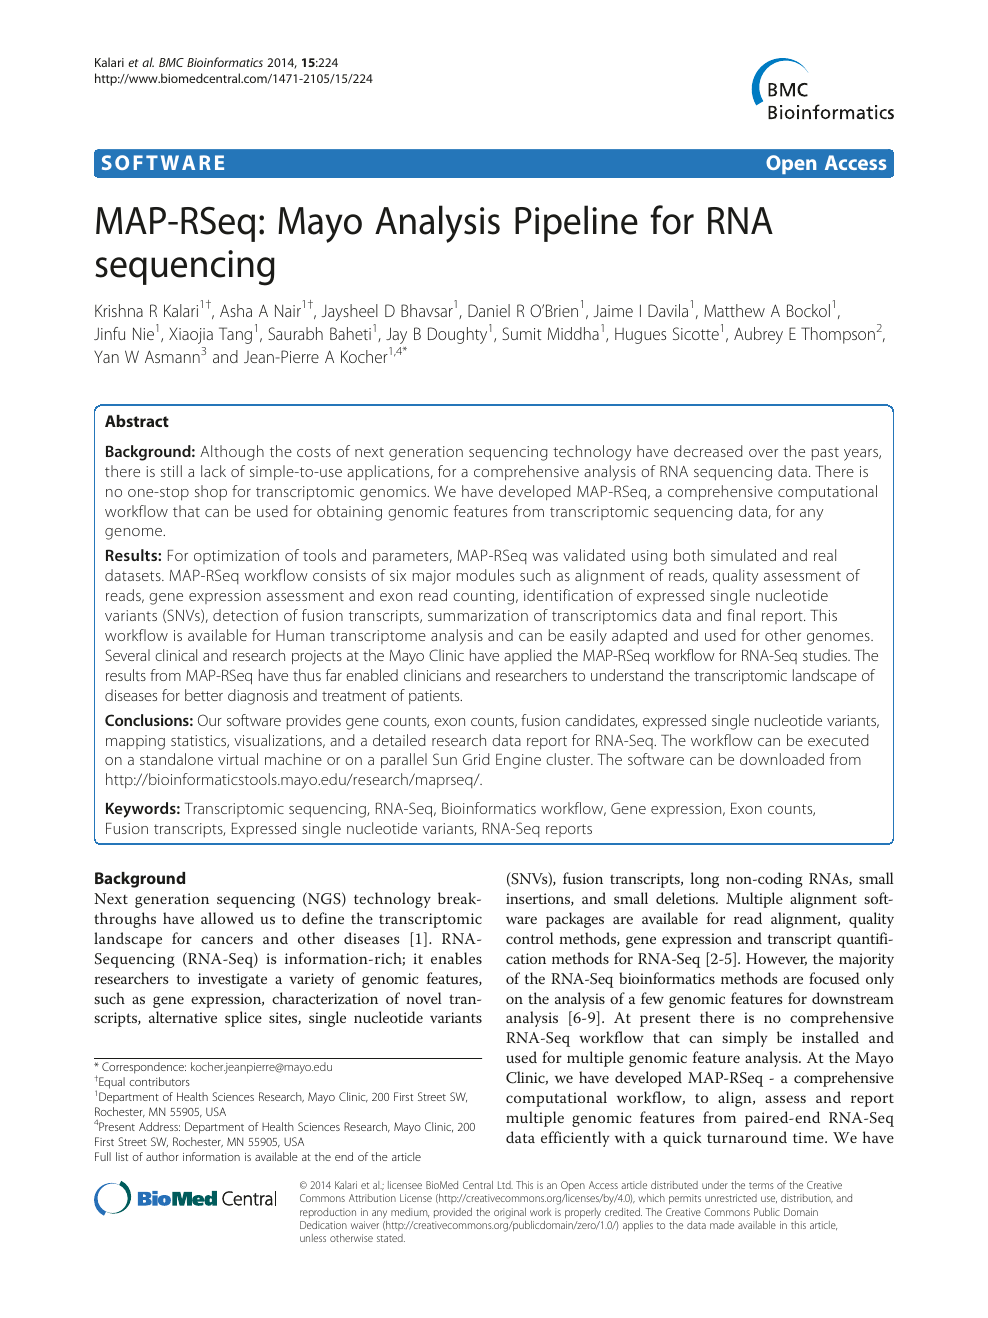 MAP-RSeq: Mayo Analysis Pipeline for RNA sequencing – topic of